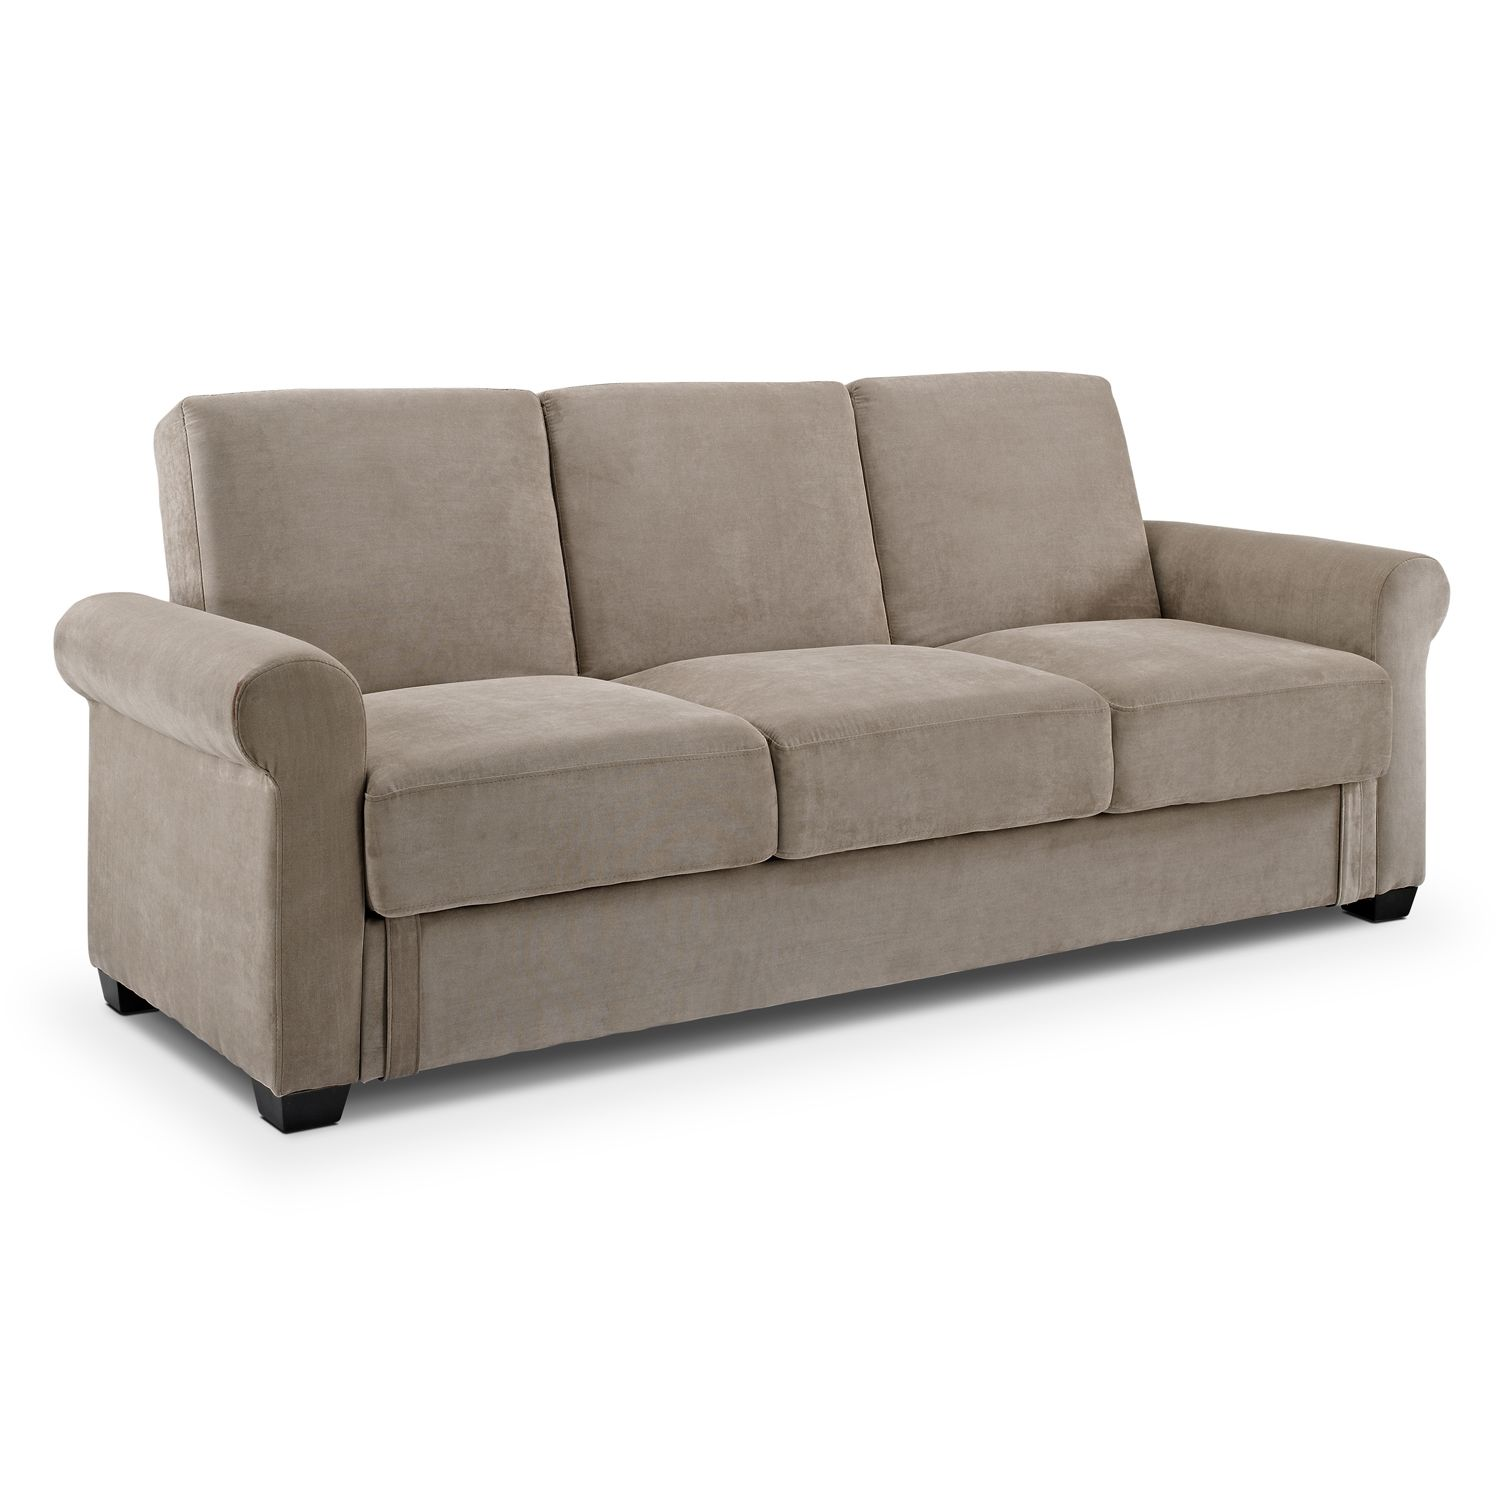 Thomas Upholstery Futon Sofa Bed With Storage Value City Furniture Love It Pinterest